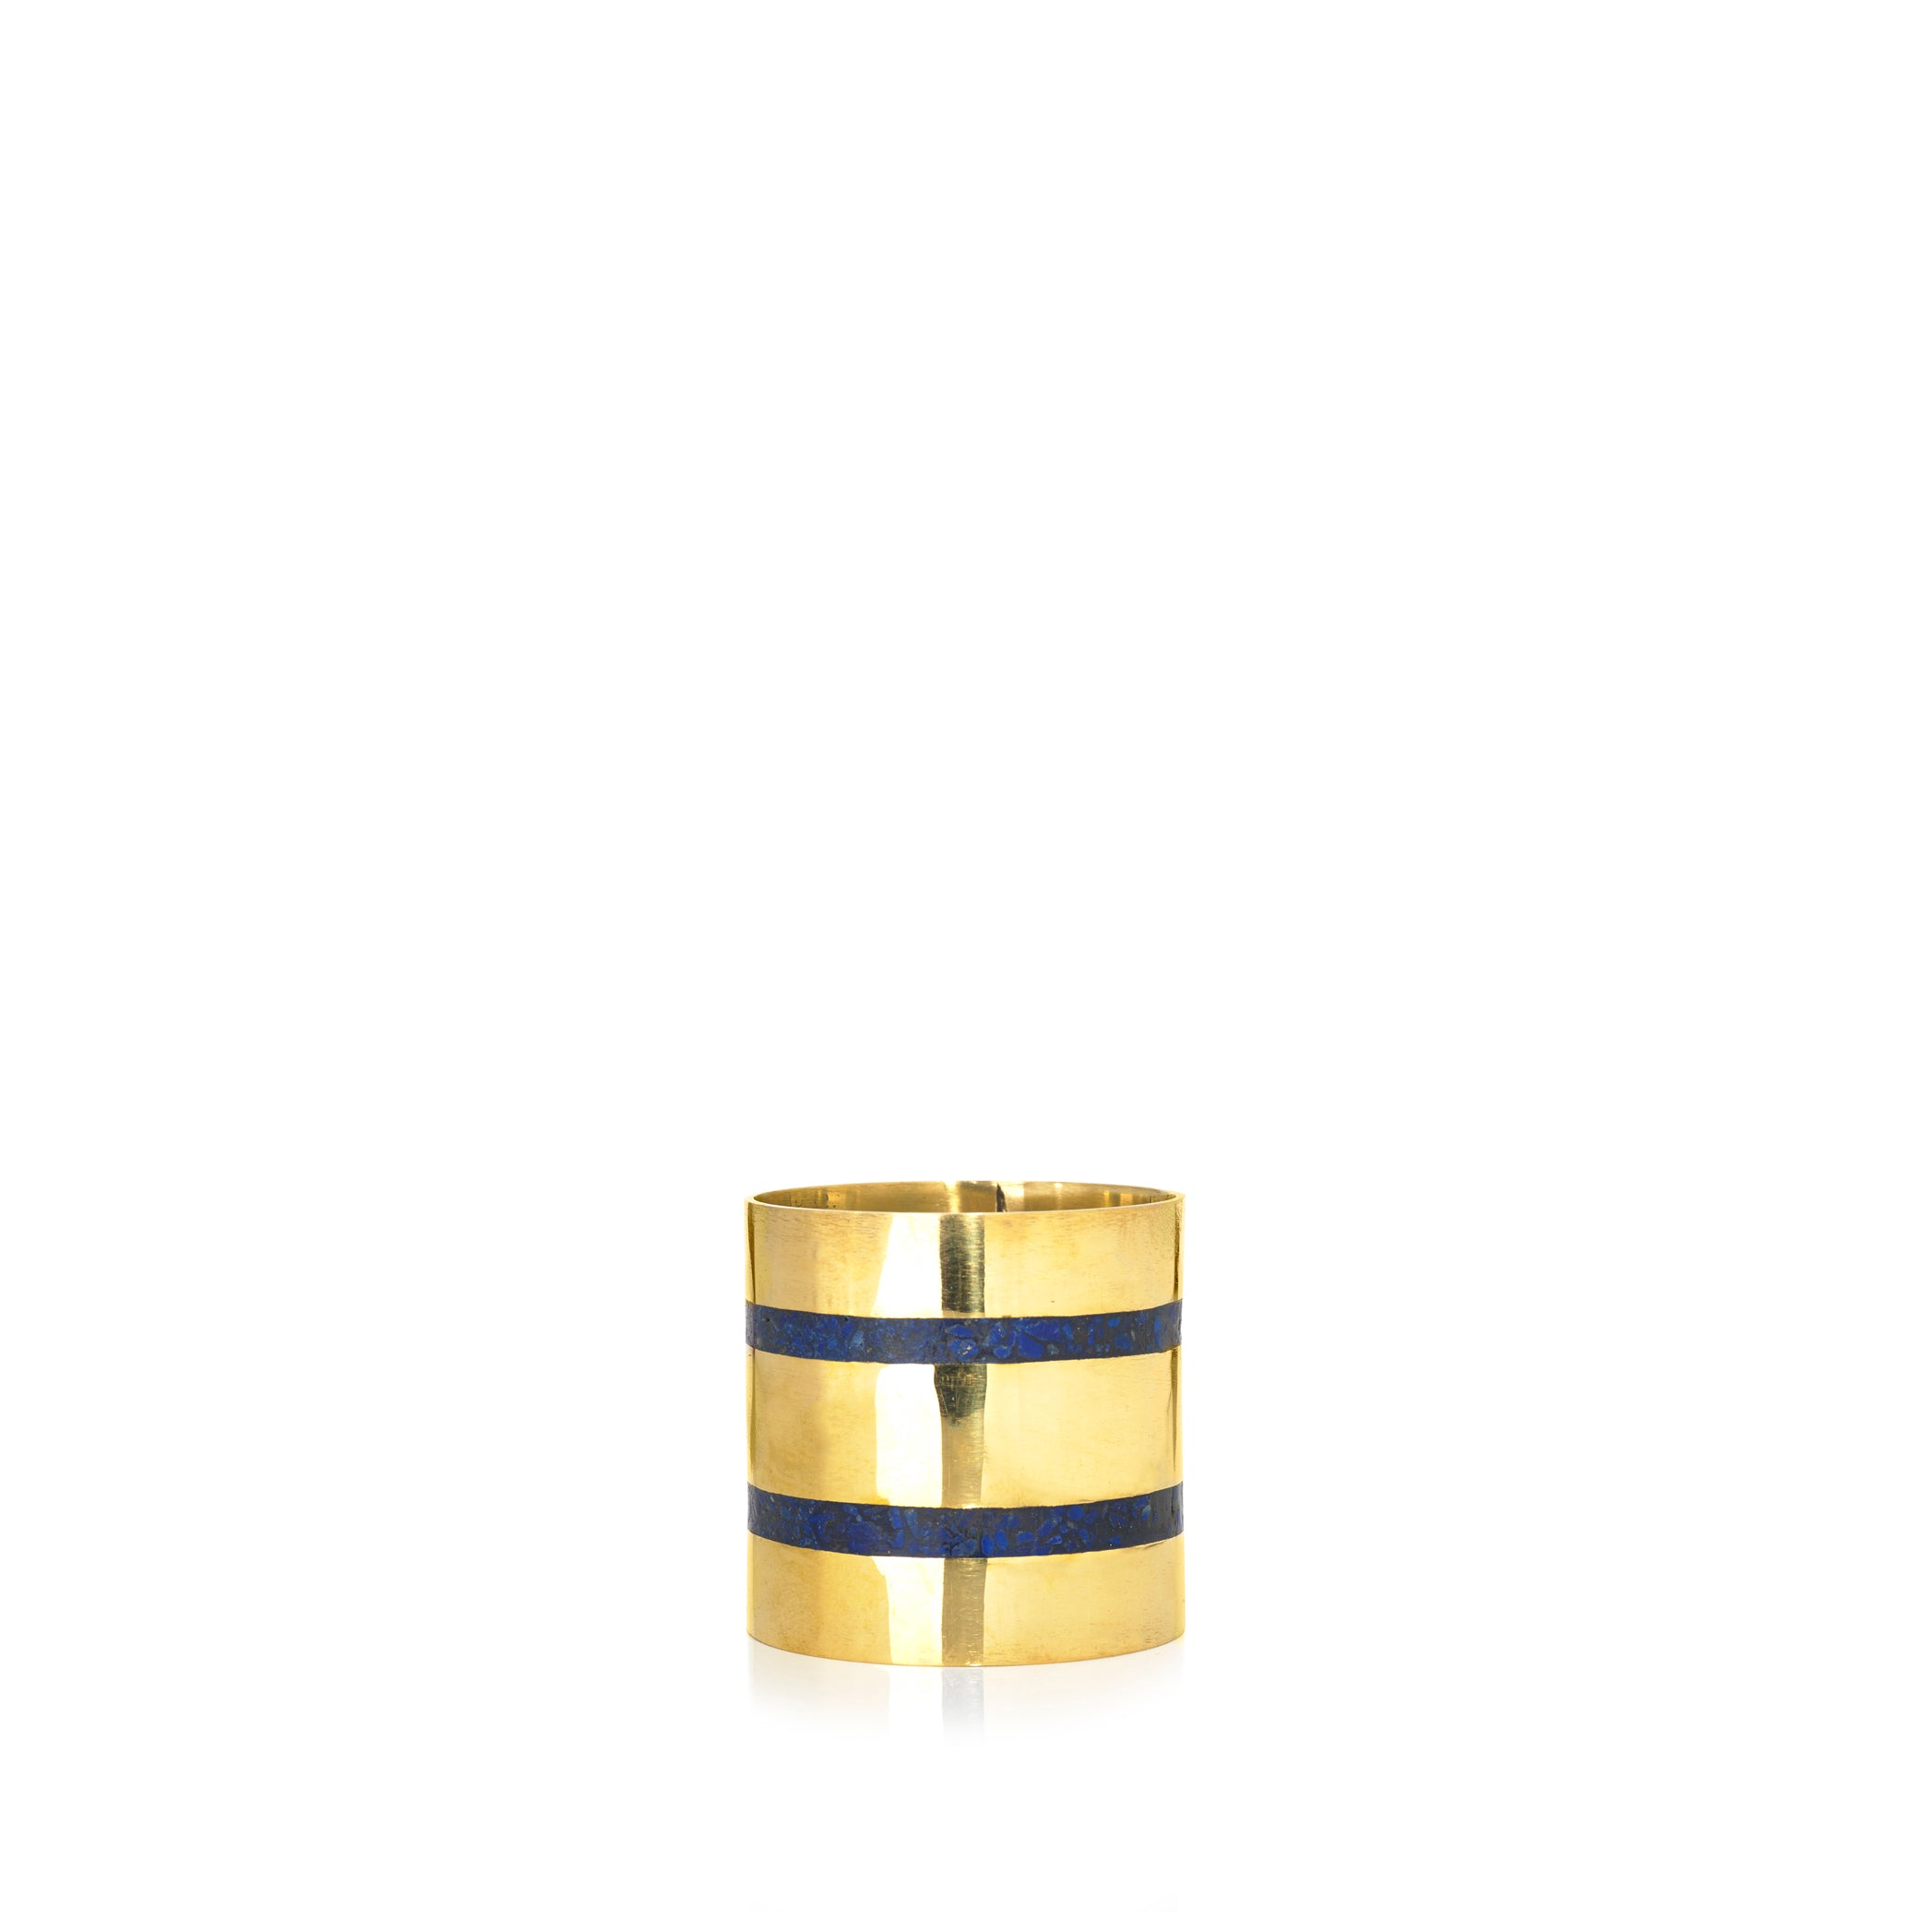 S&B x Pippa Small Lapis Inlaid Napkin Ring, Thin Double Stripe Horizontal